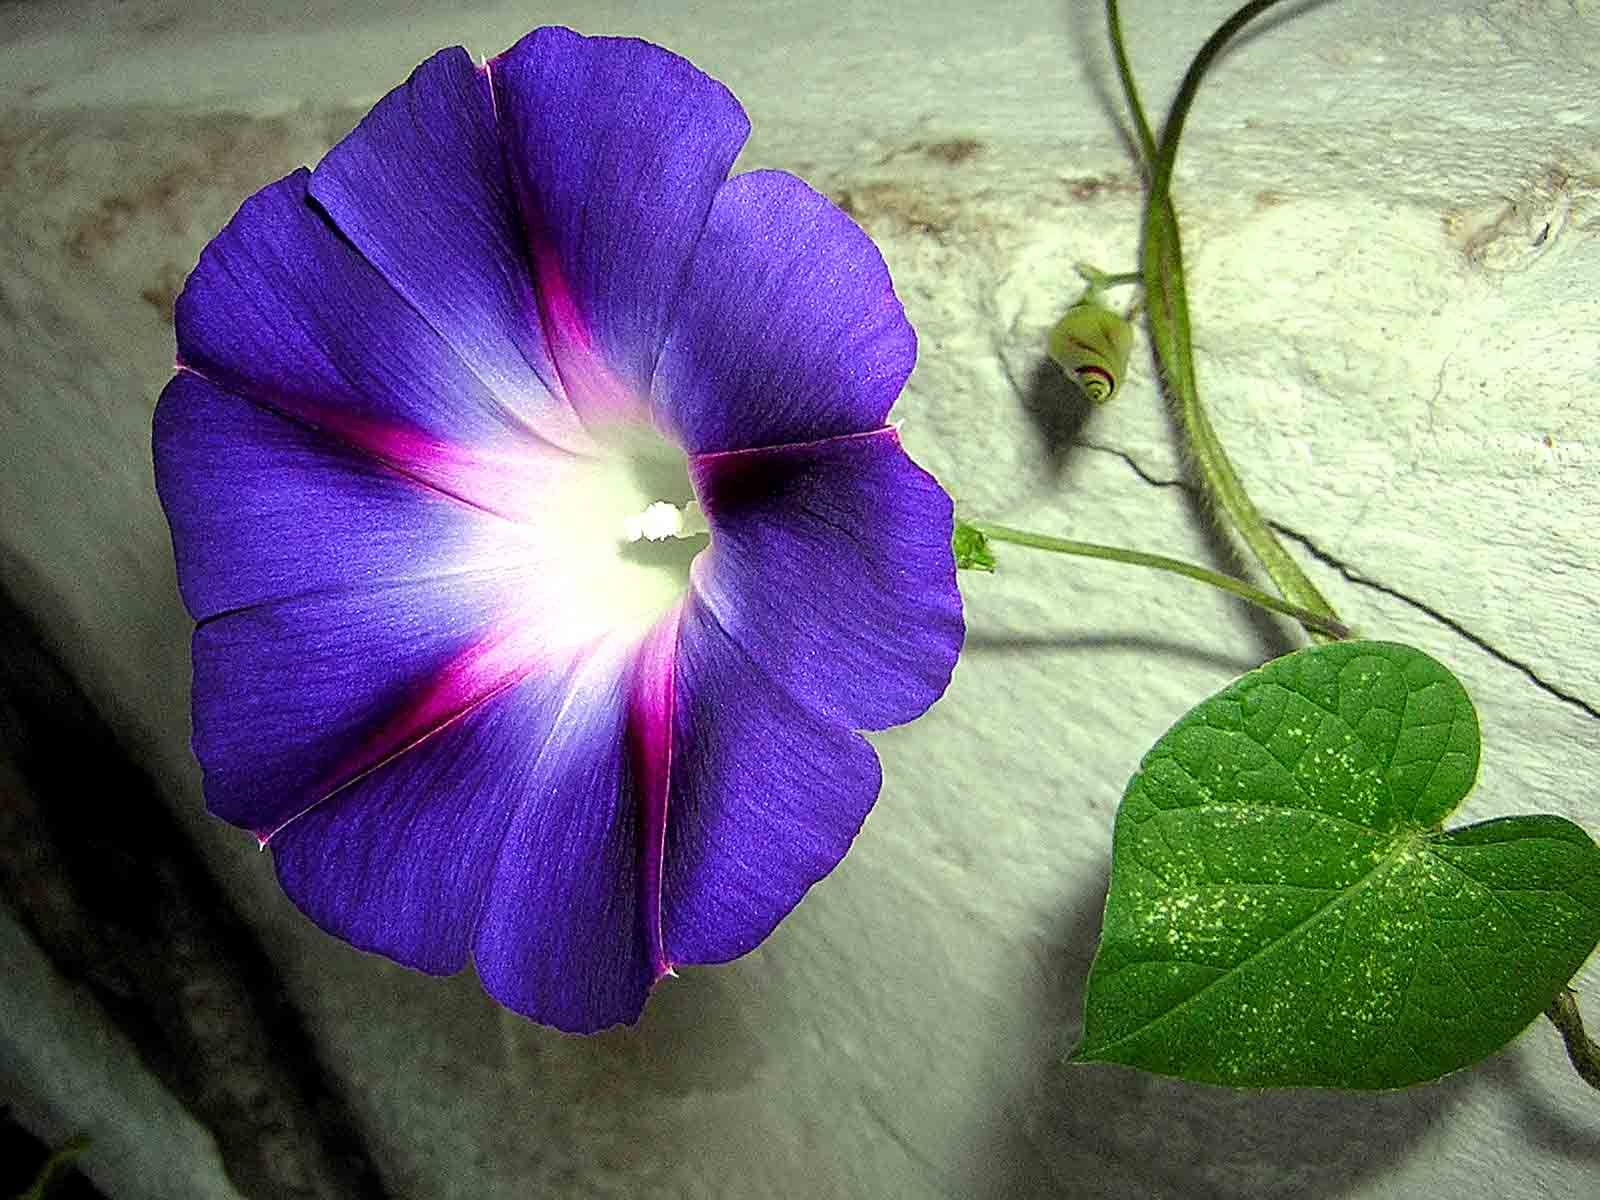 Ipomoea Morning Glory Morning Glory Flowers Birth Flowers Morning Glory